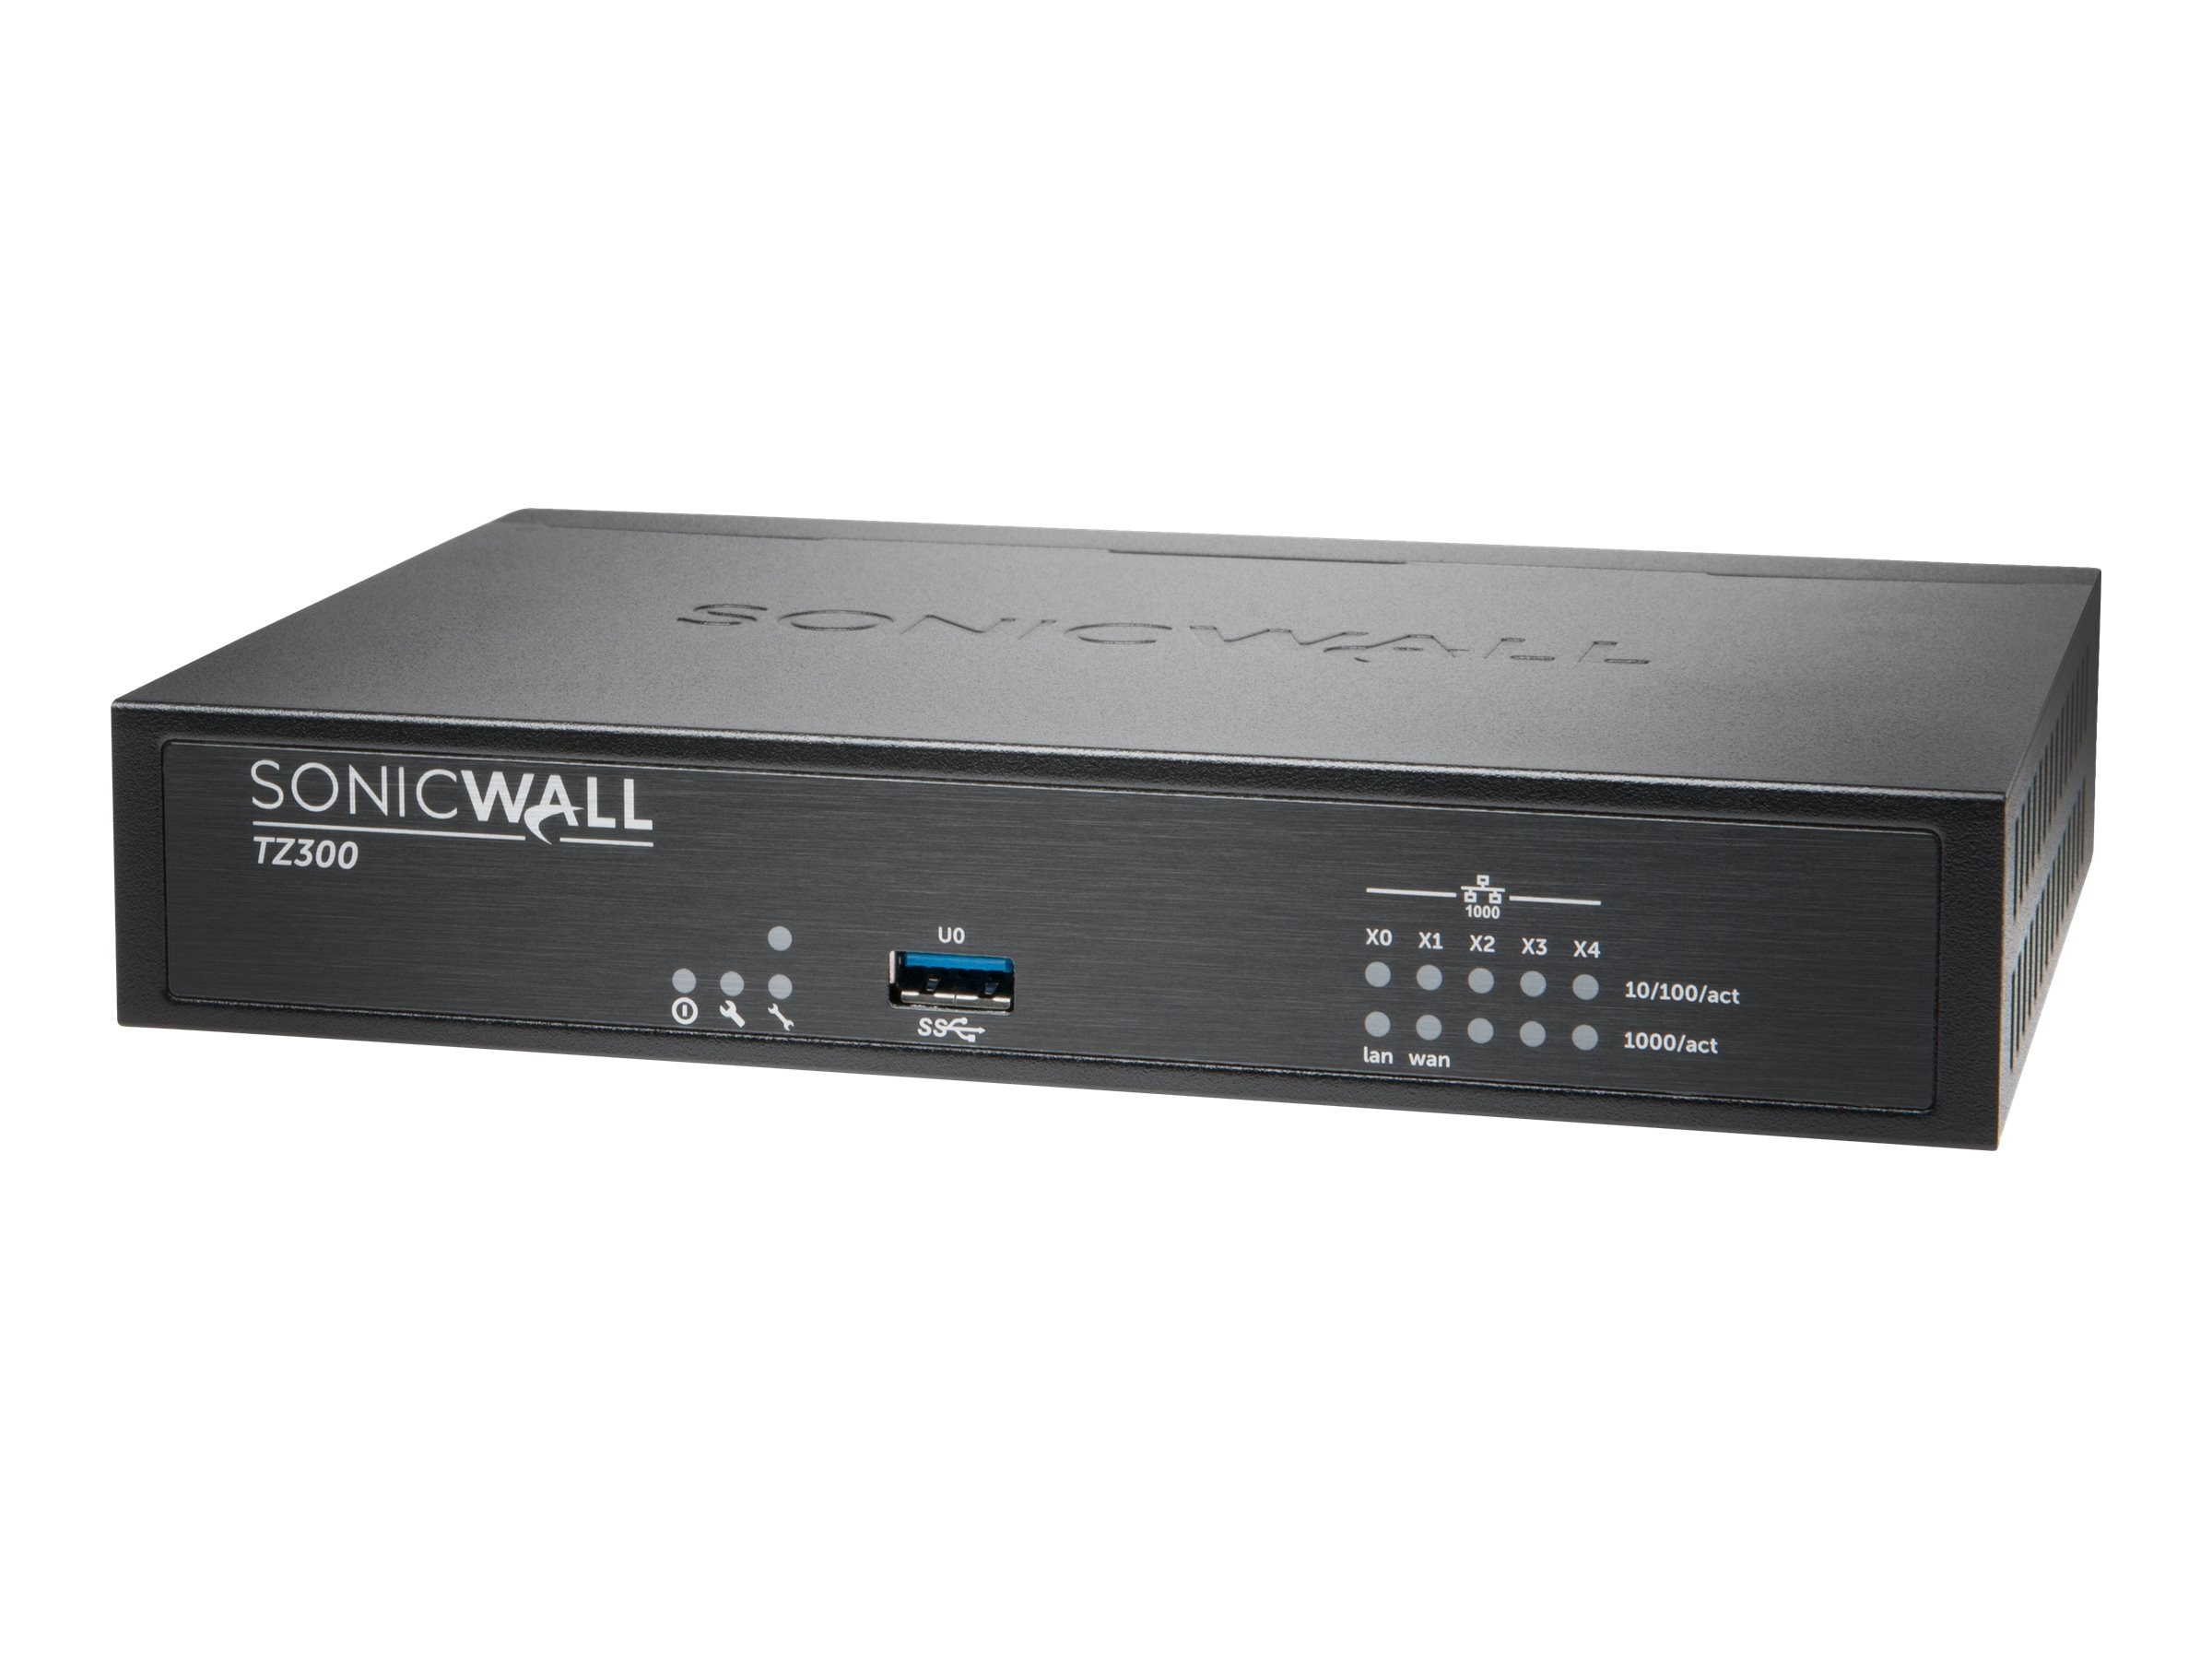 SonicWALL SonicWALL TZ300 Firewall with Secure Upgrade Plus (2 Years)